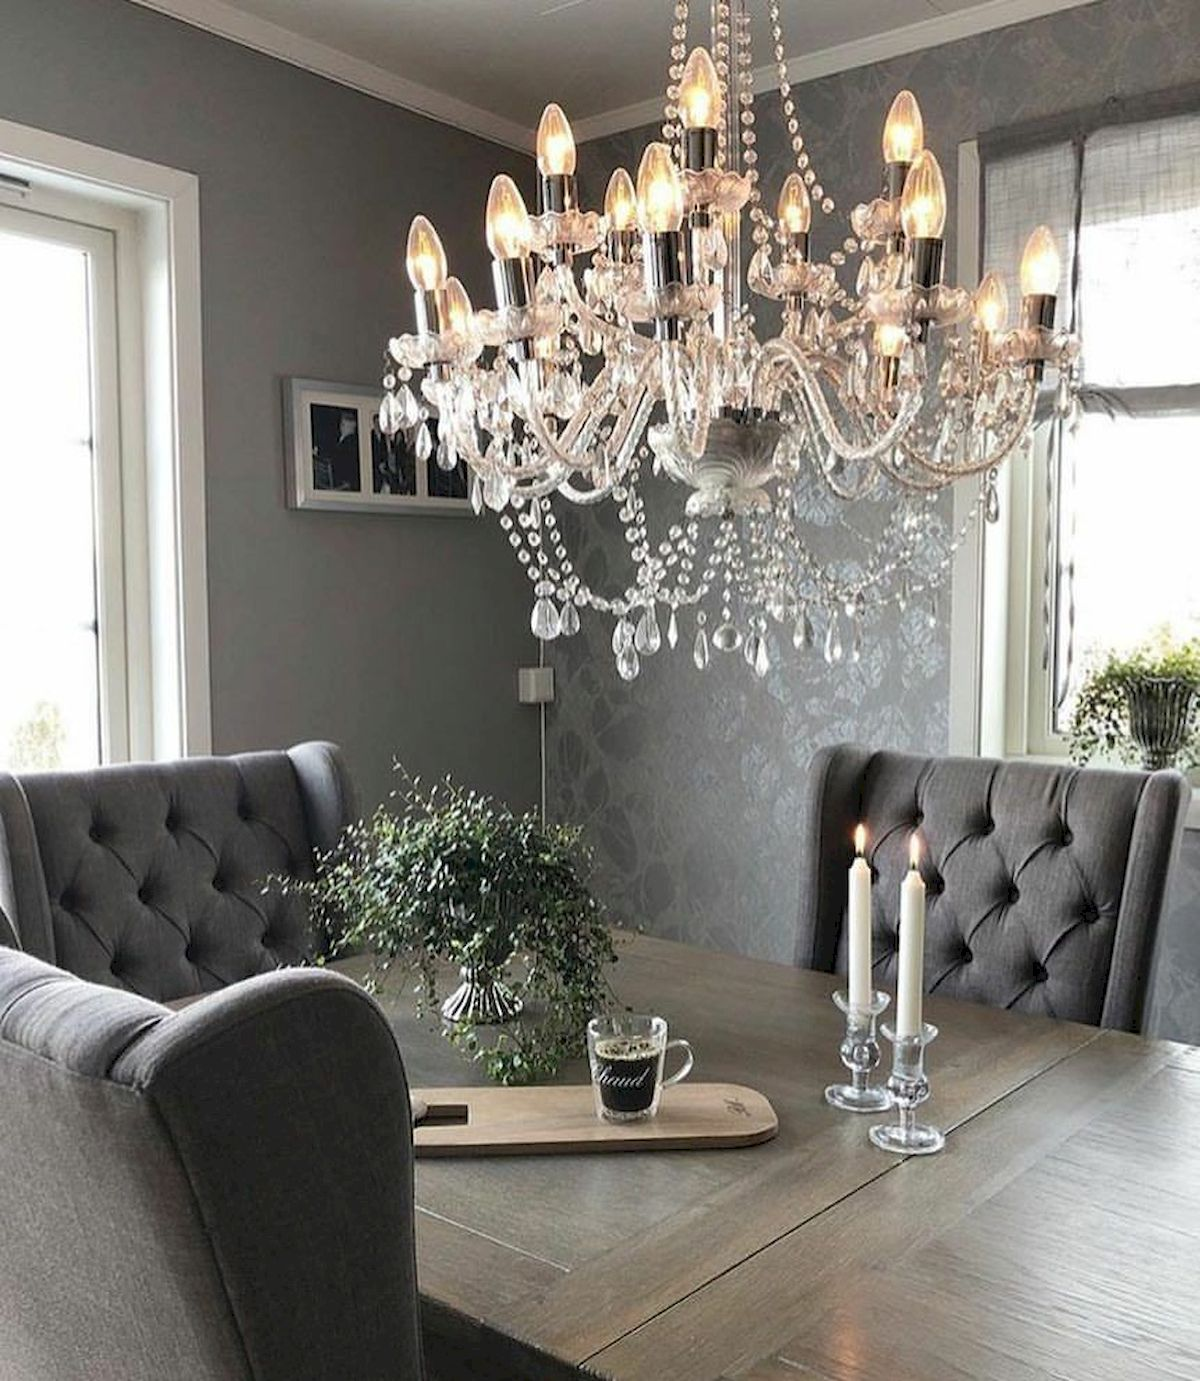 50 Gorgeous Dinning Room Design and Decor Ideas (22)